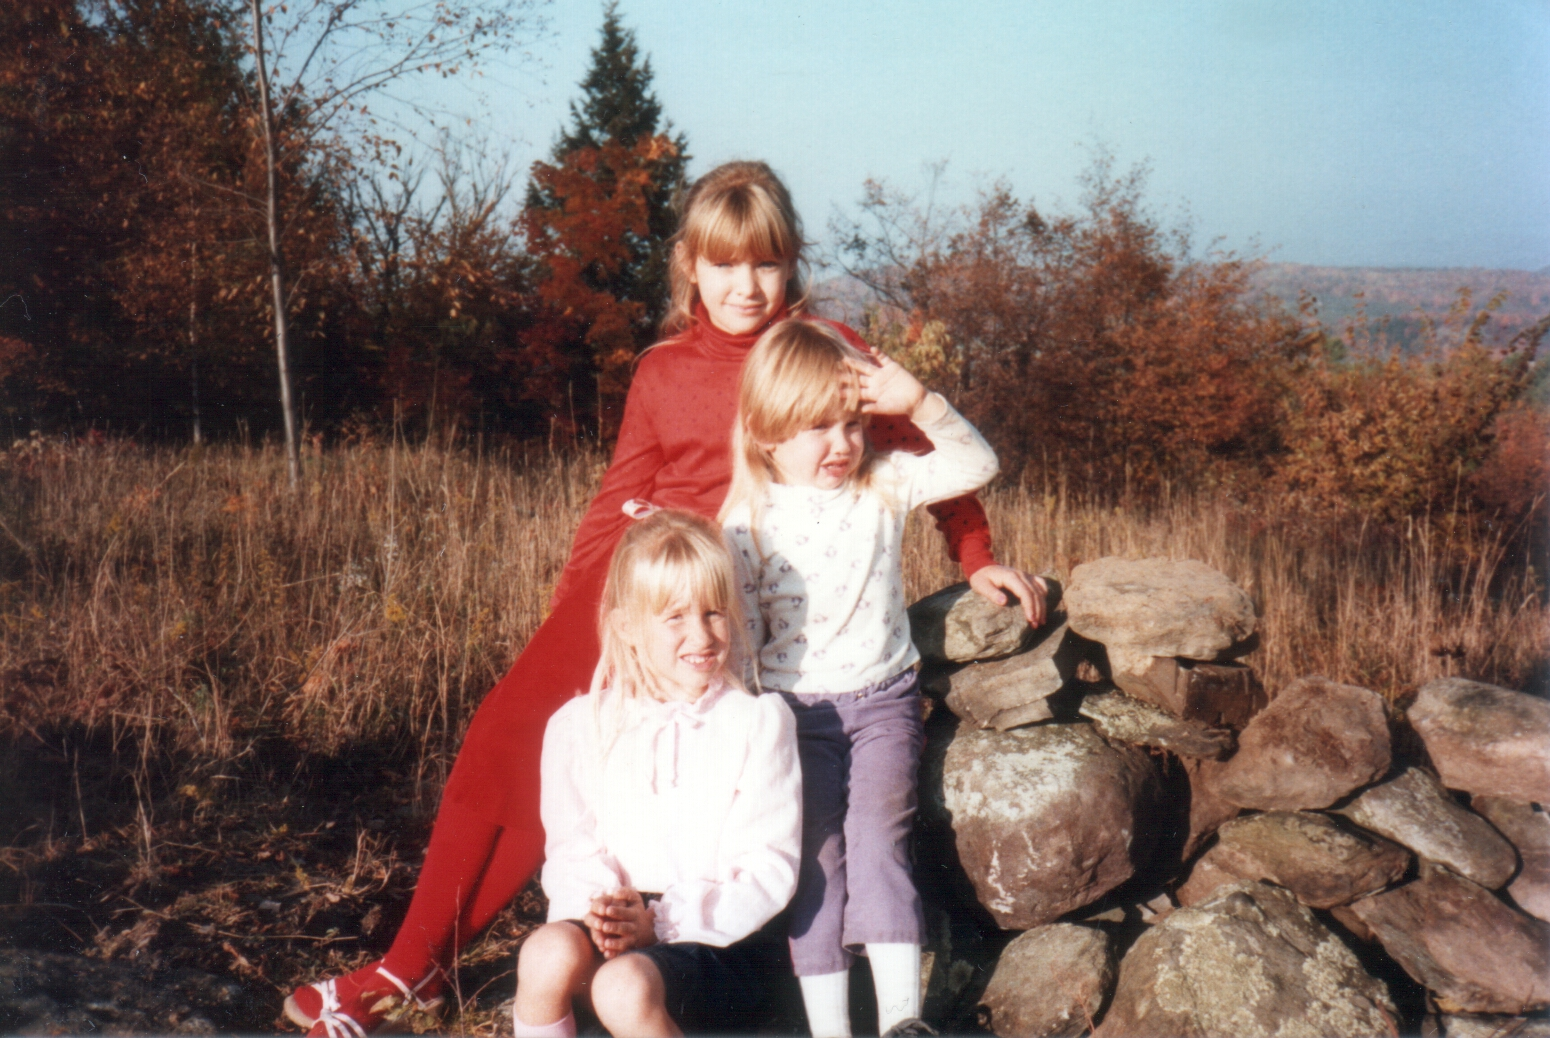 The sisters Jess, Laura, Sarah (top to bottom). Judging by Laura's rockin' mullet, this photo was taken mid 1980s.